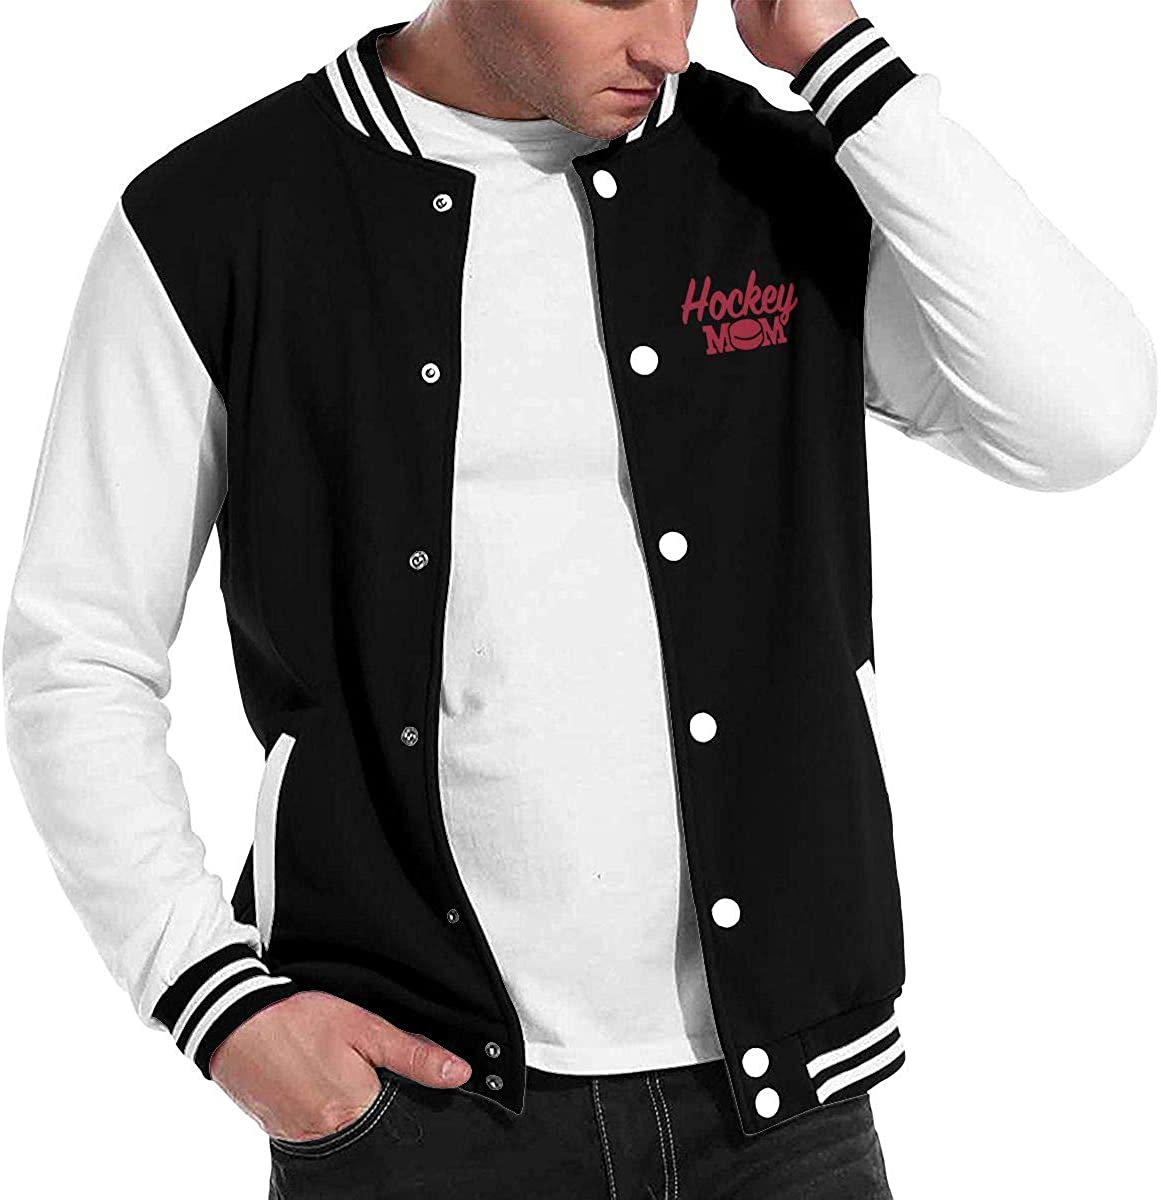 JJKKFG-H Hockey Mom Mens Cool Baseball Uniform Jacket Sport Coat